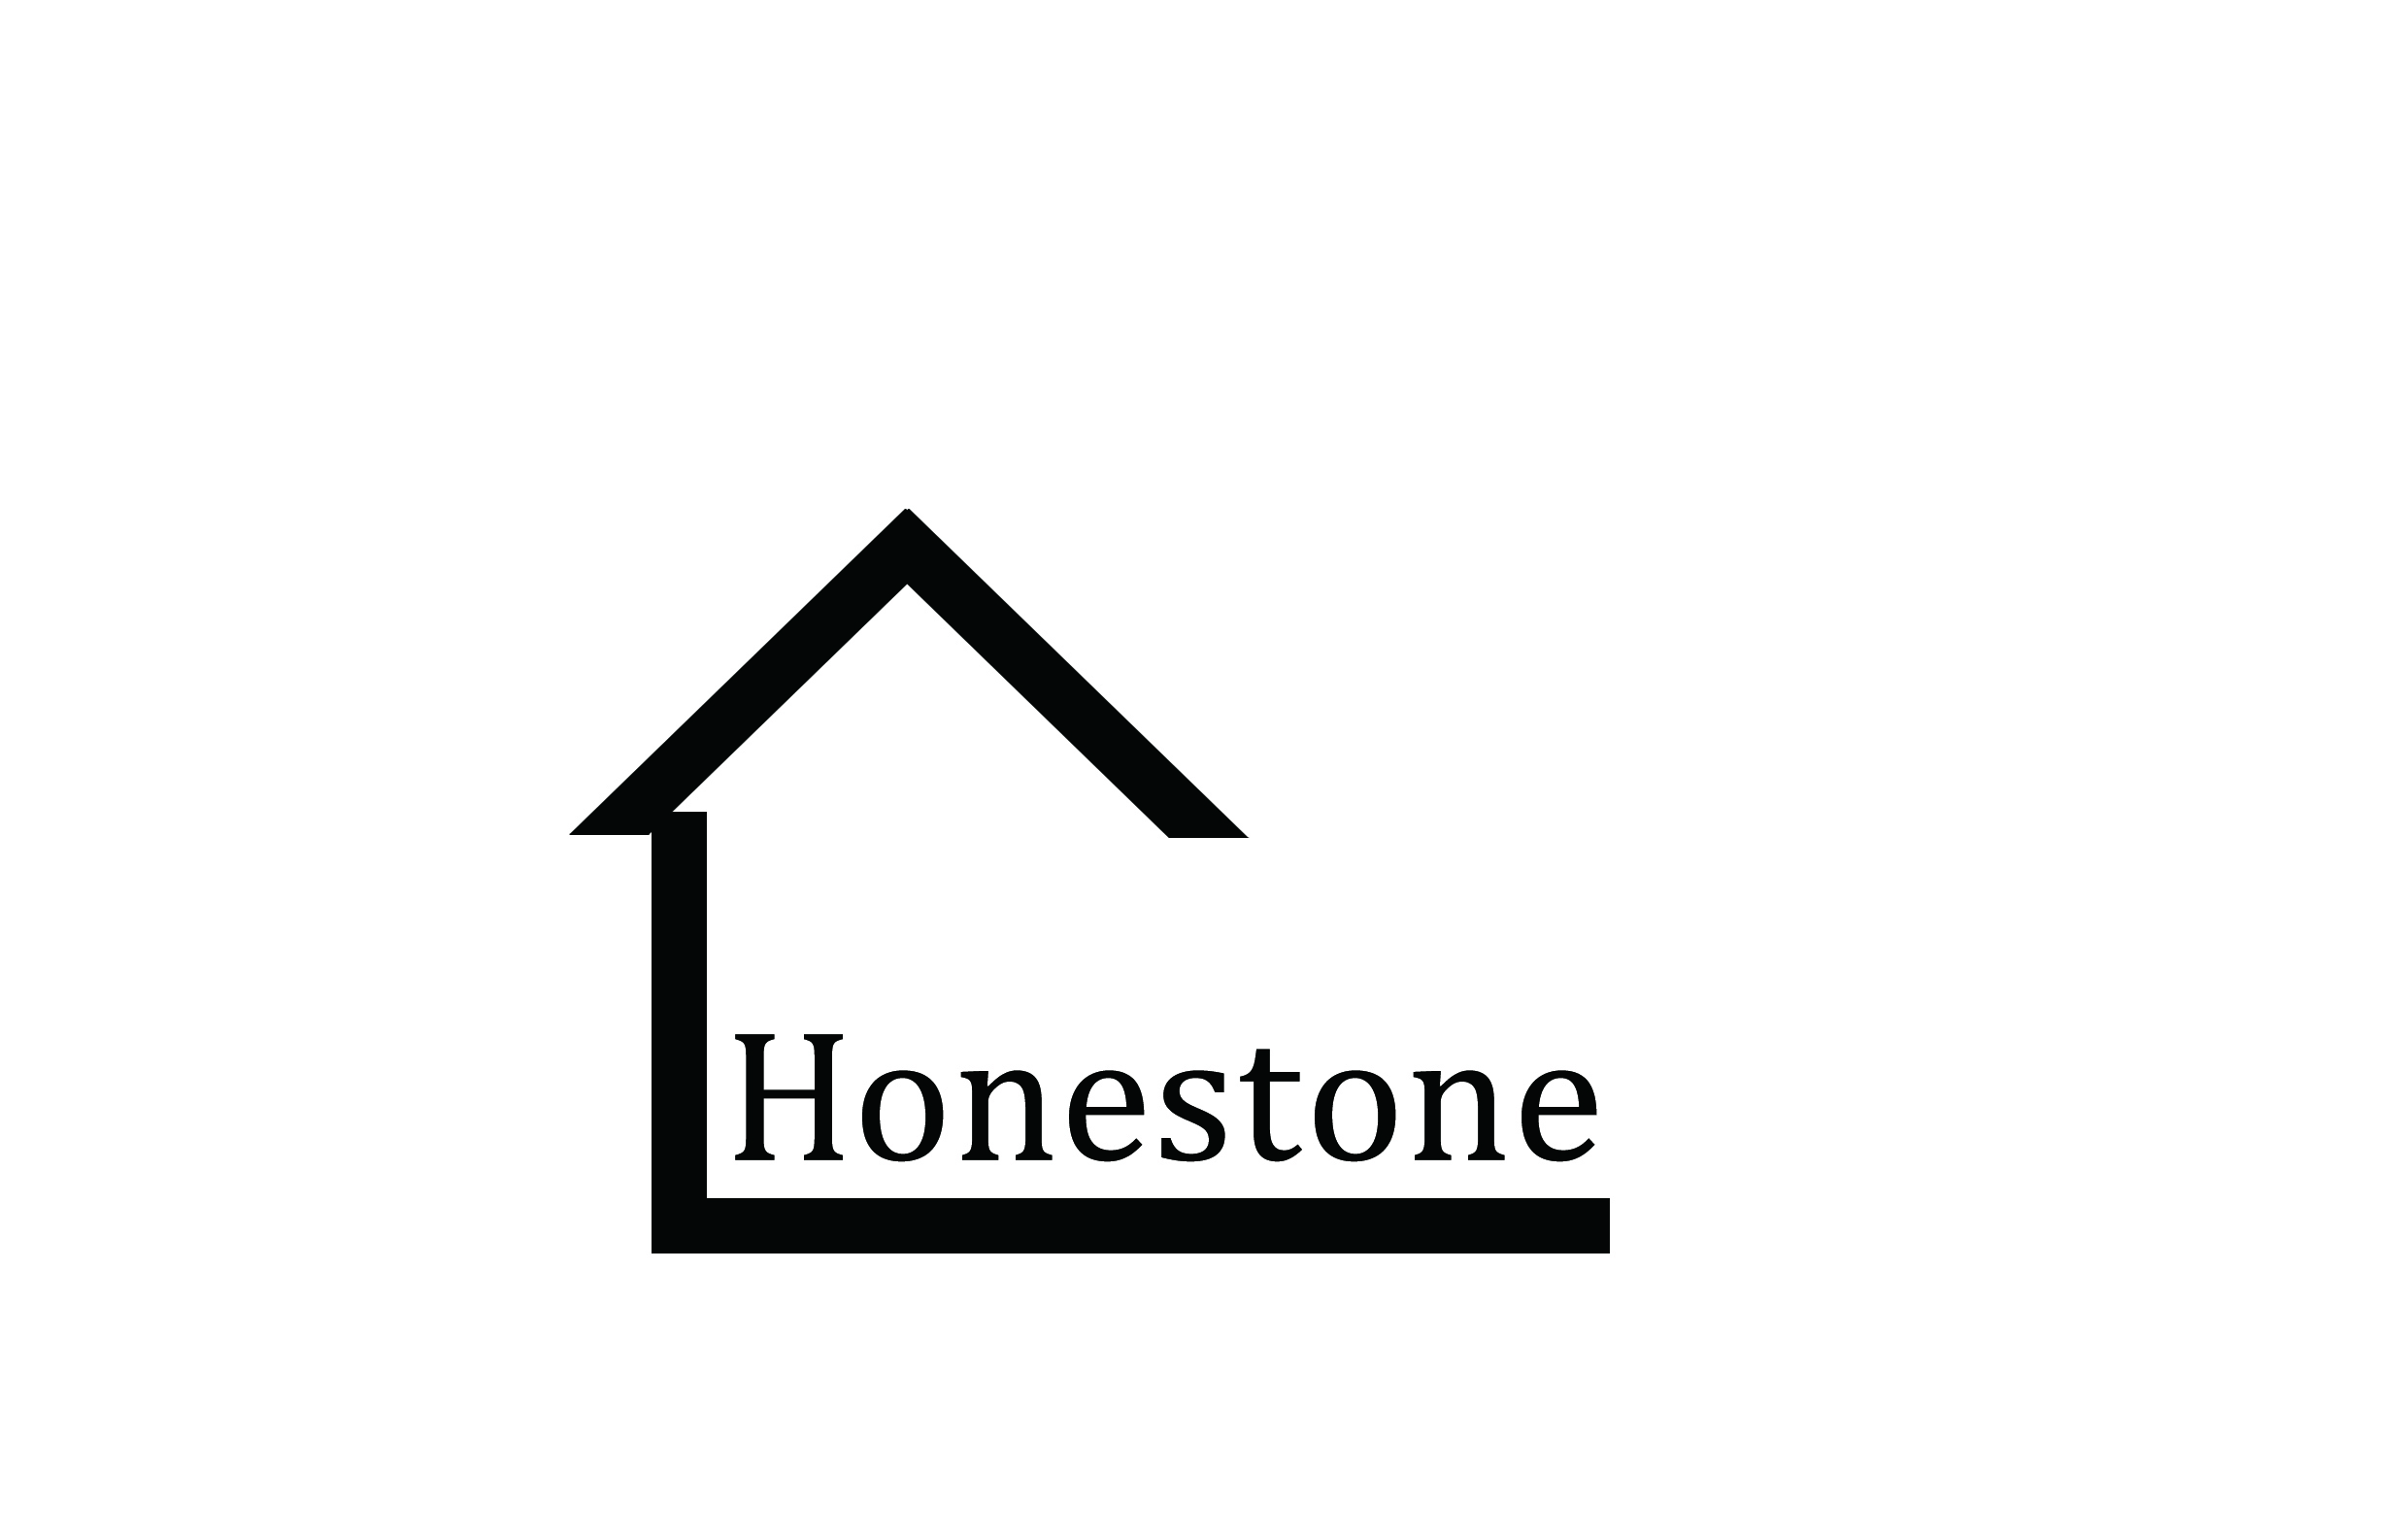 Honestone Industrial Co., Ltd.